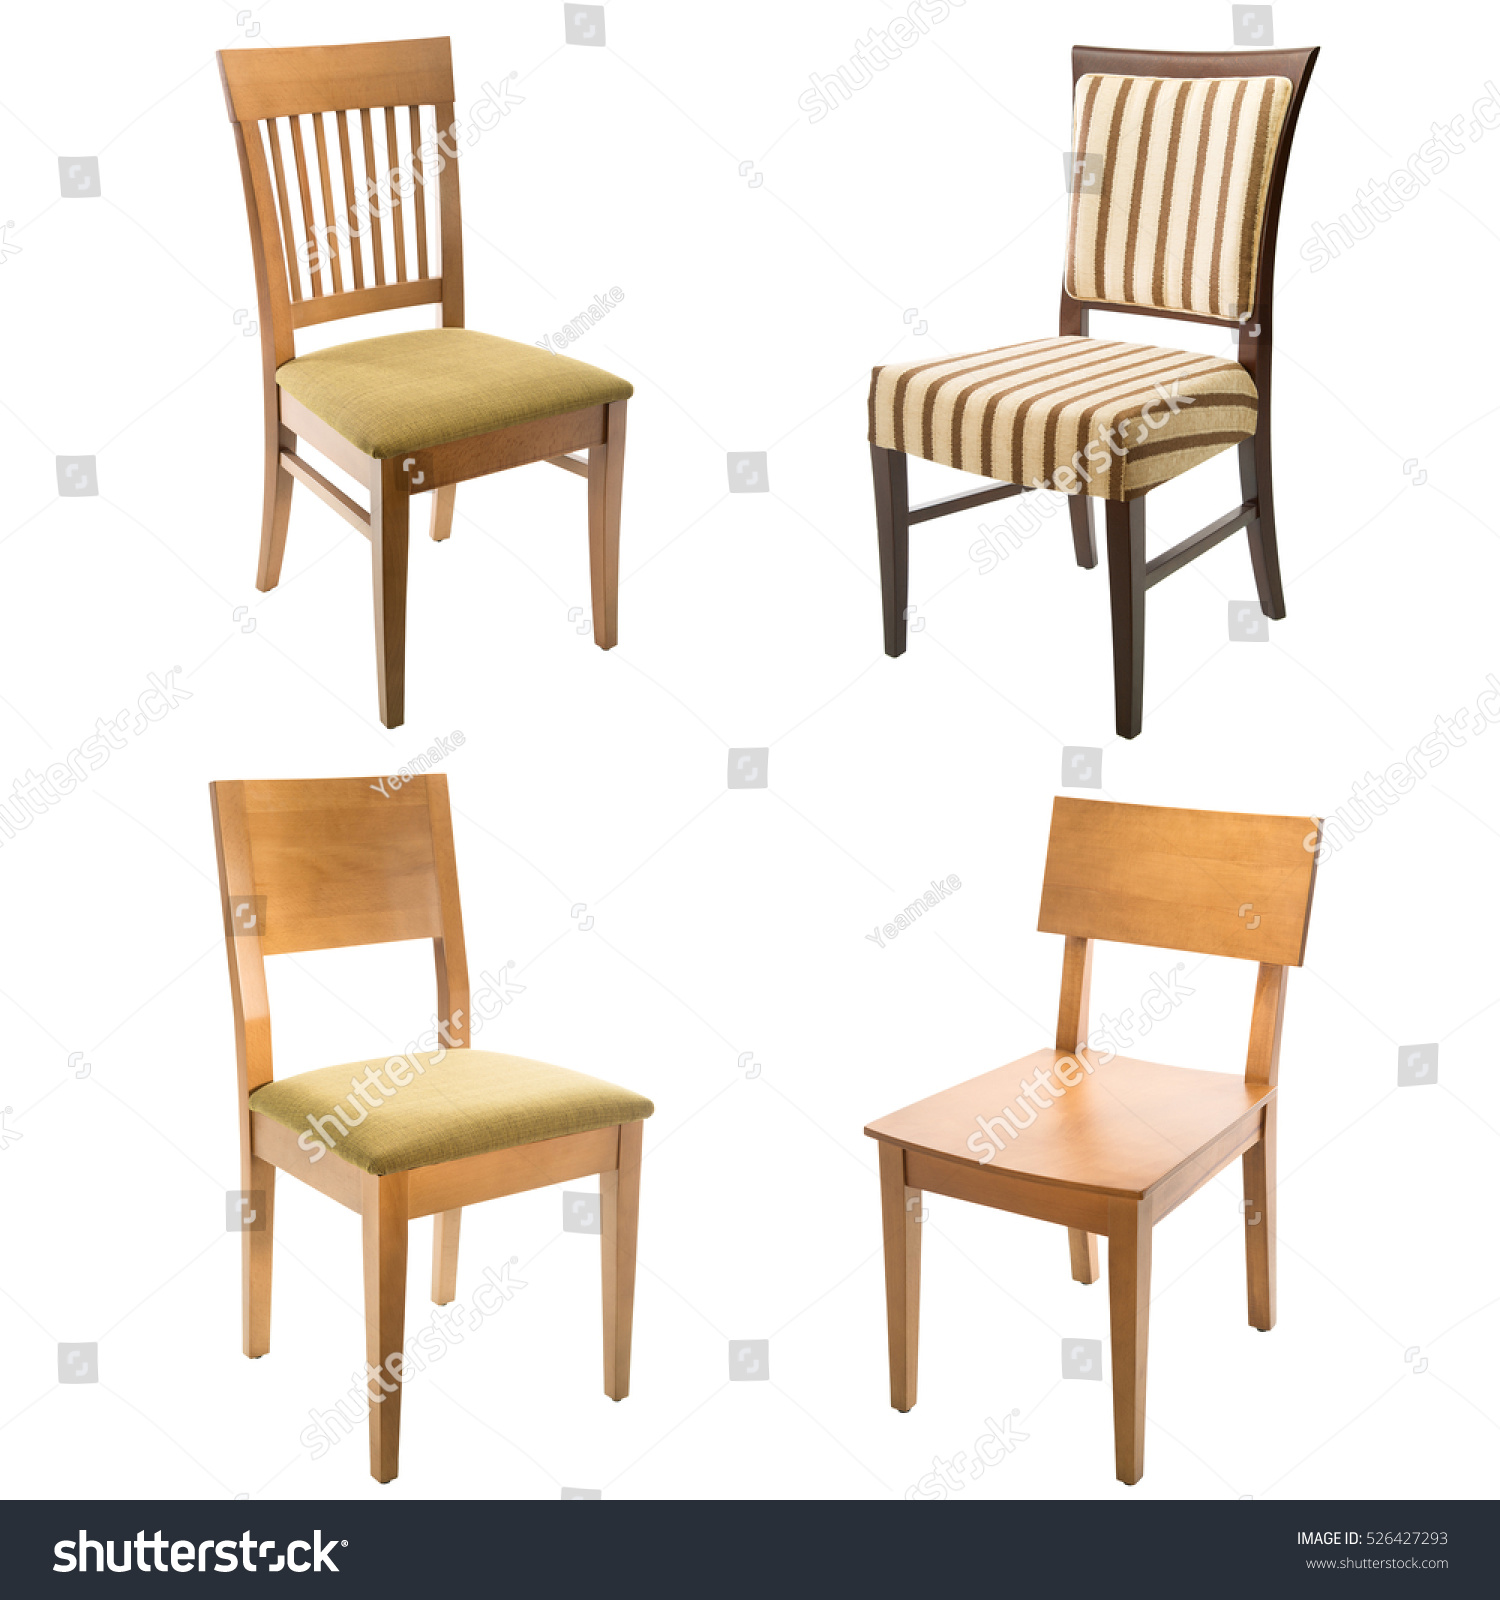 Comfortable arm chairs - Set Of Comfortable Arm Chairs Isolated On White Background Leather Wooden And Textile Chairs